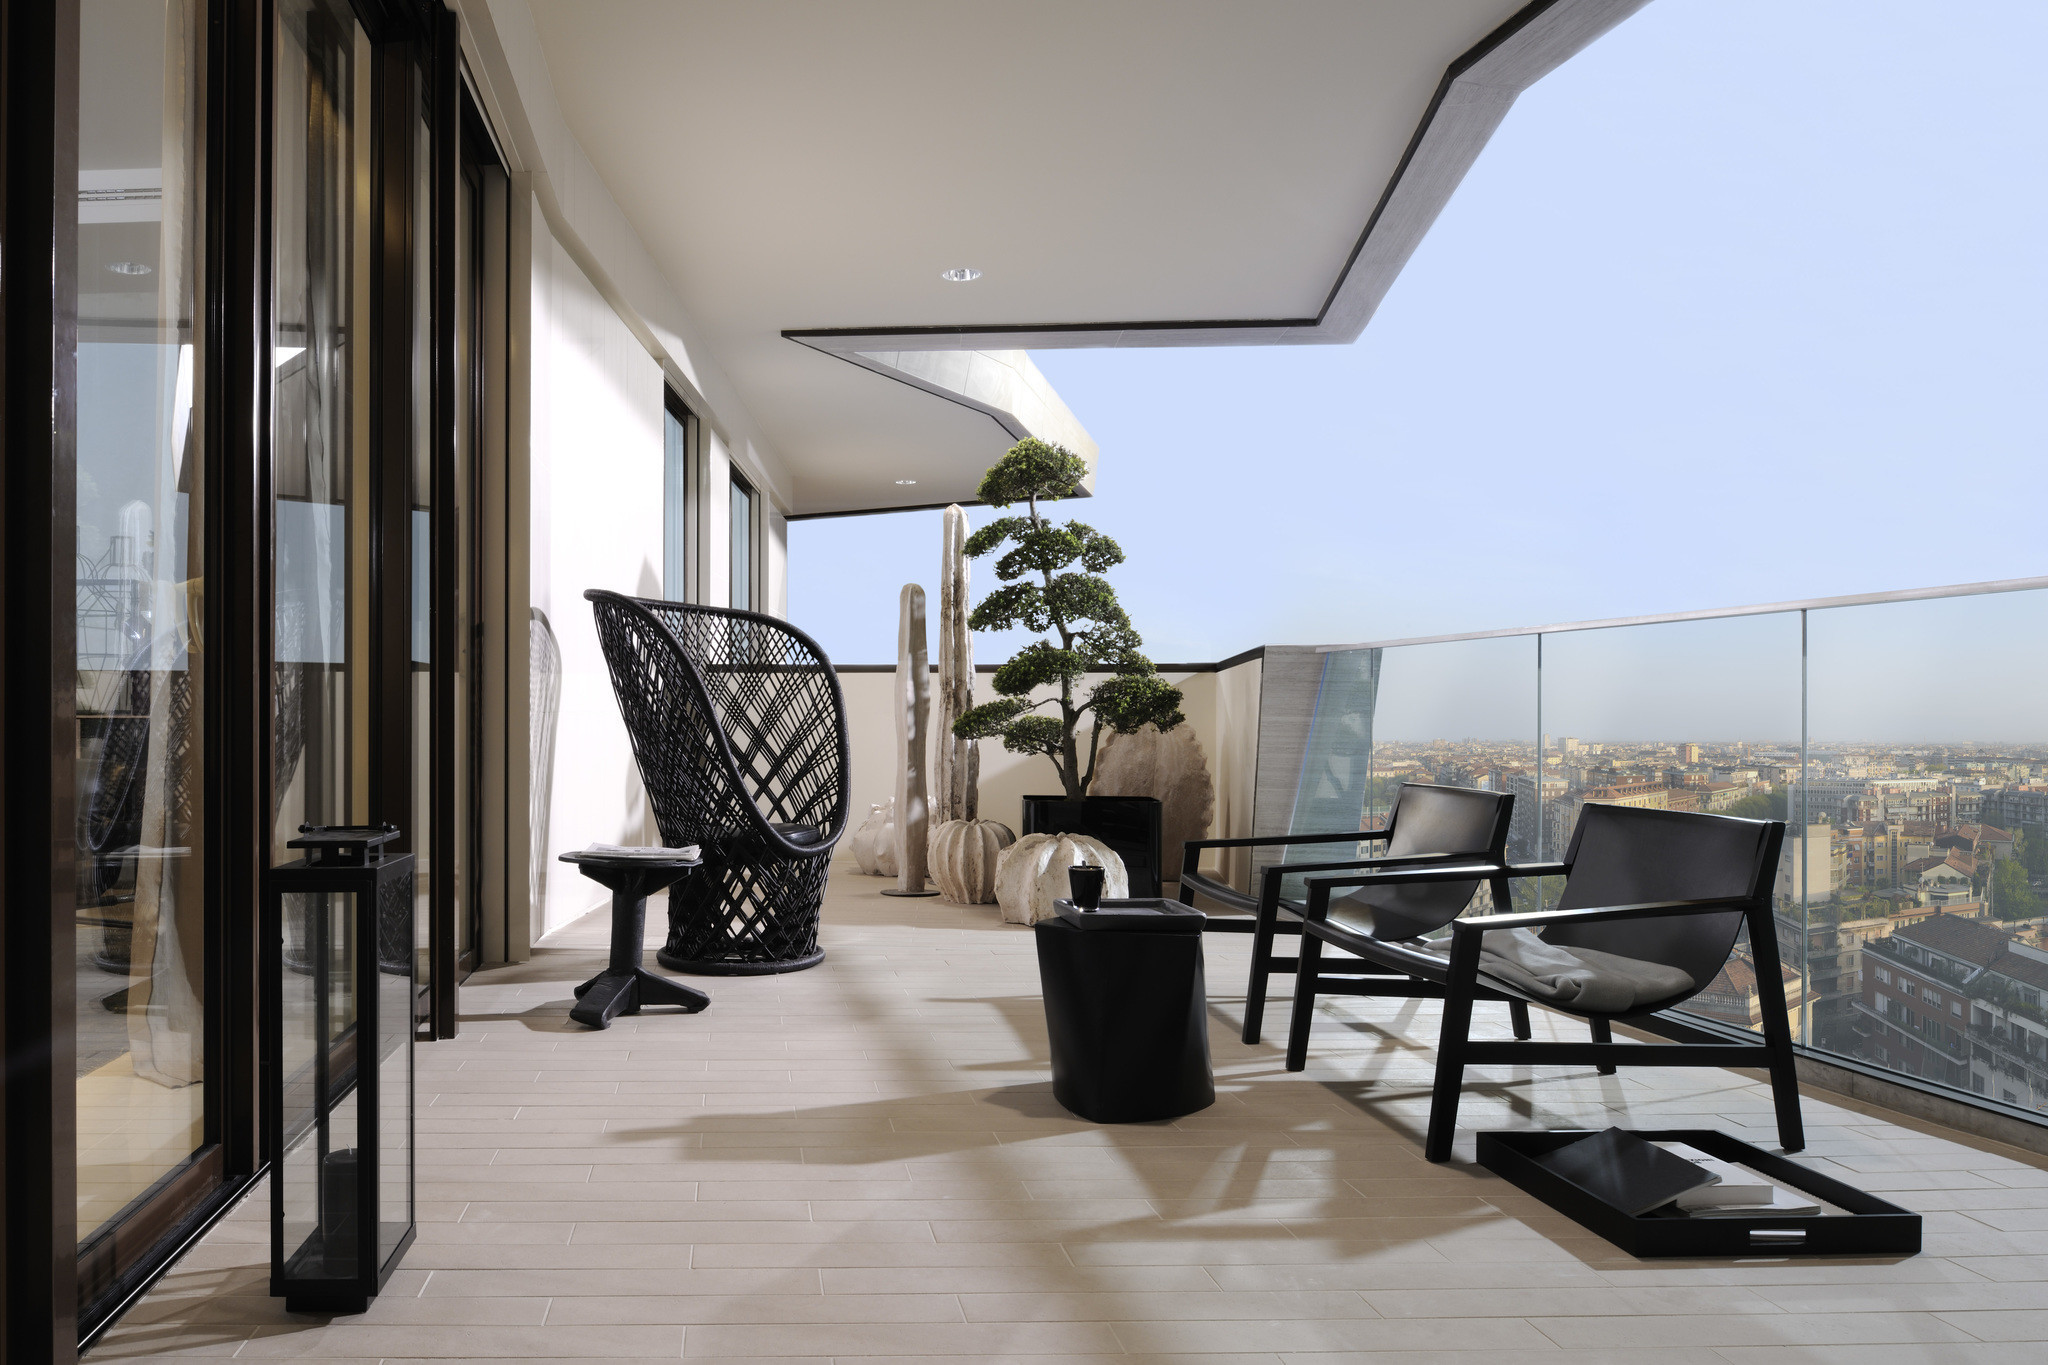 Biophilic interior design in CityLife, balcony.